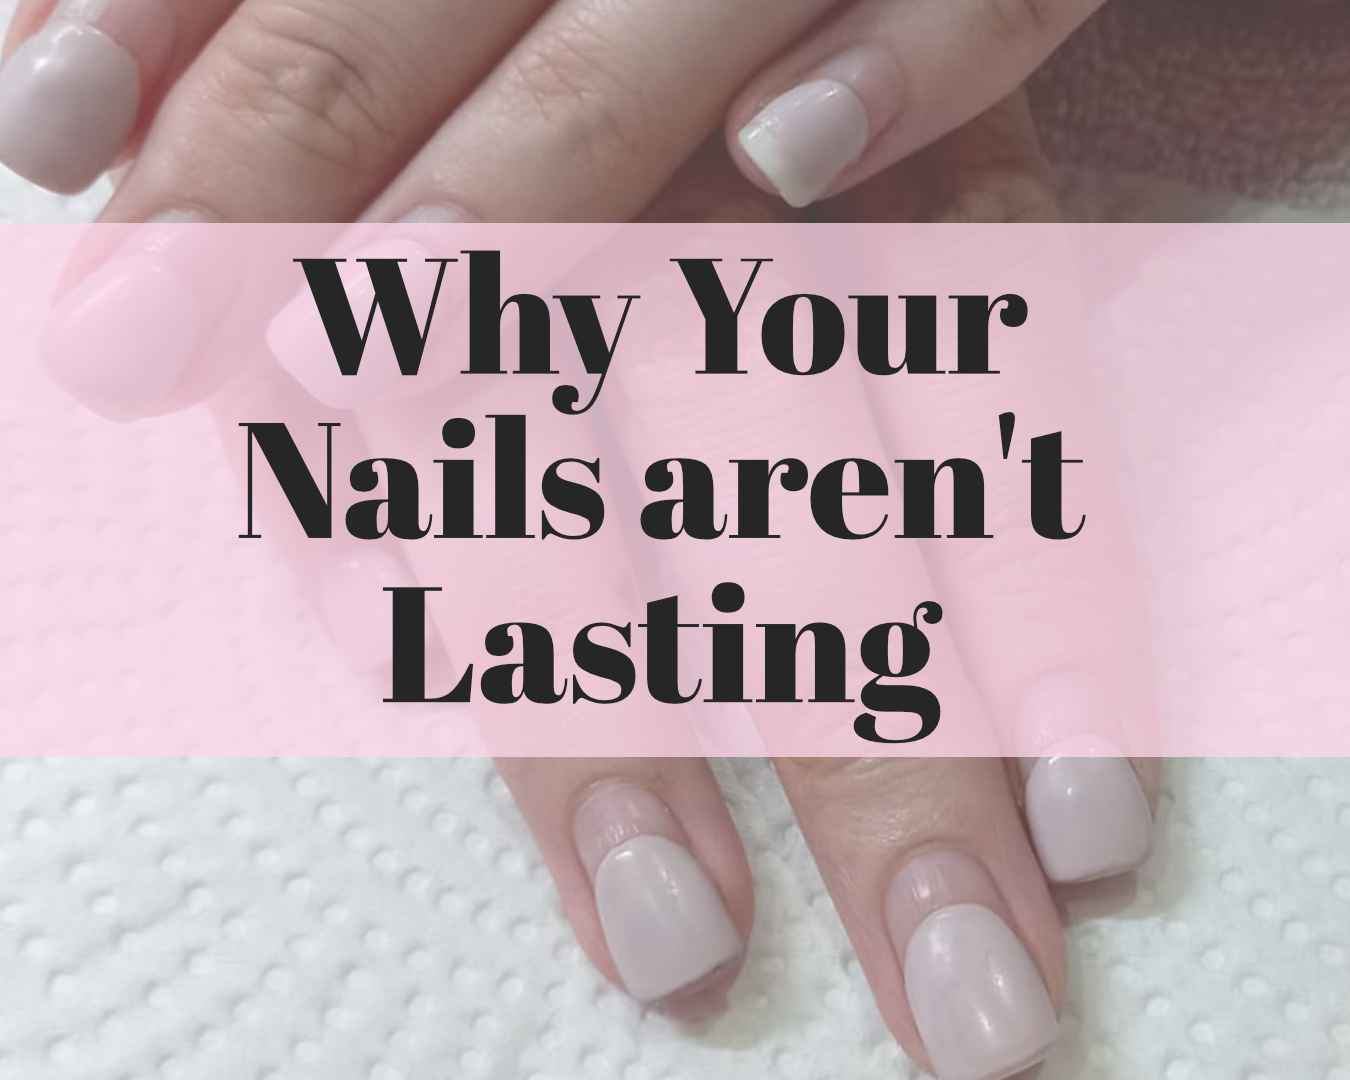 Why your nails aren't lasting long